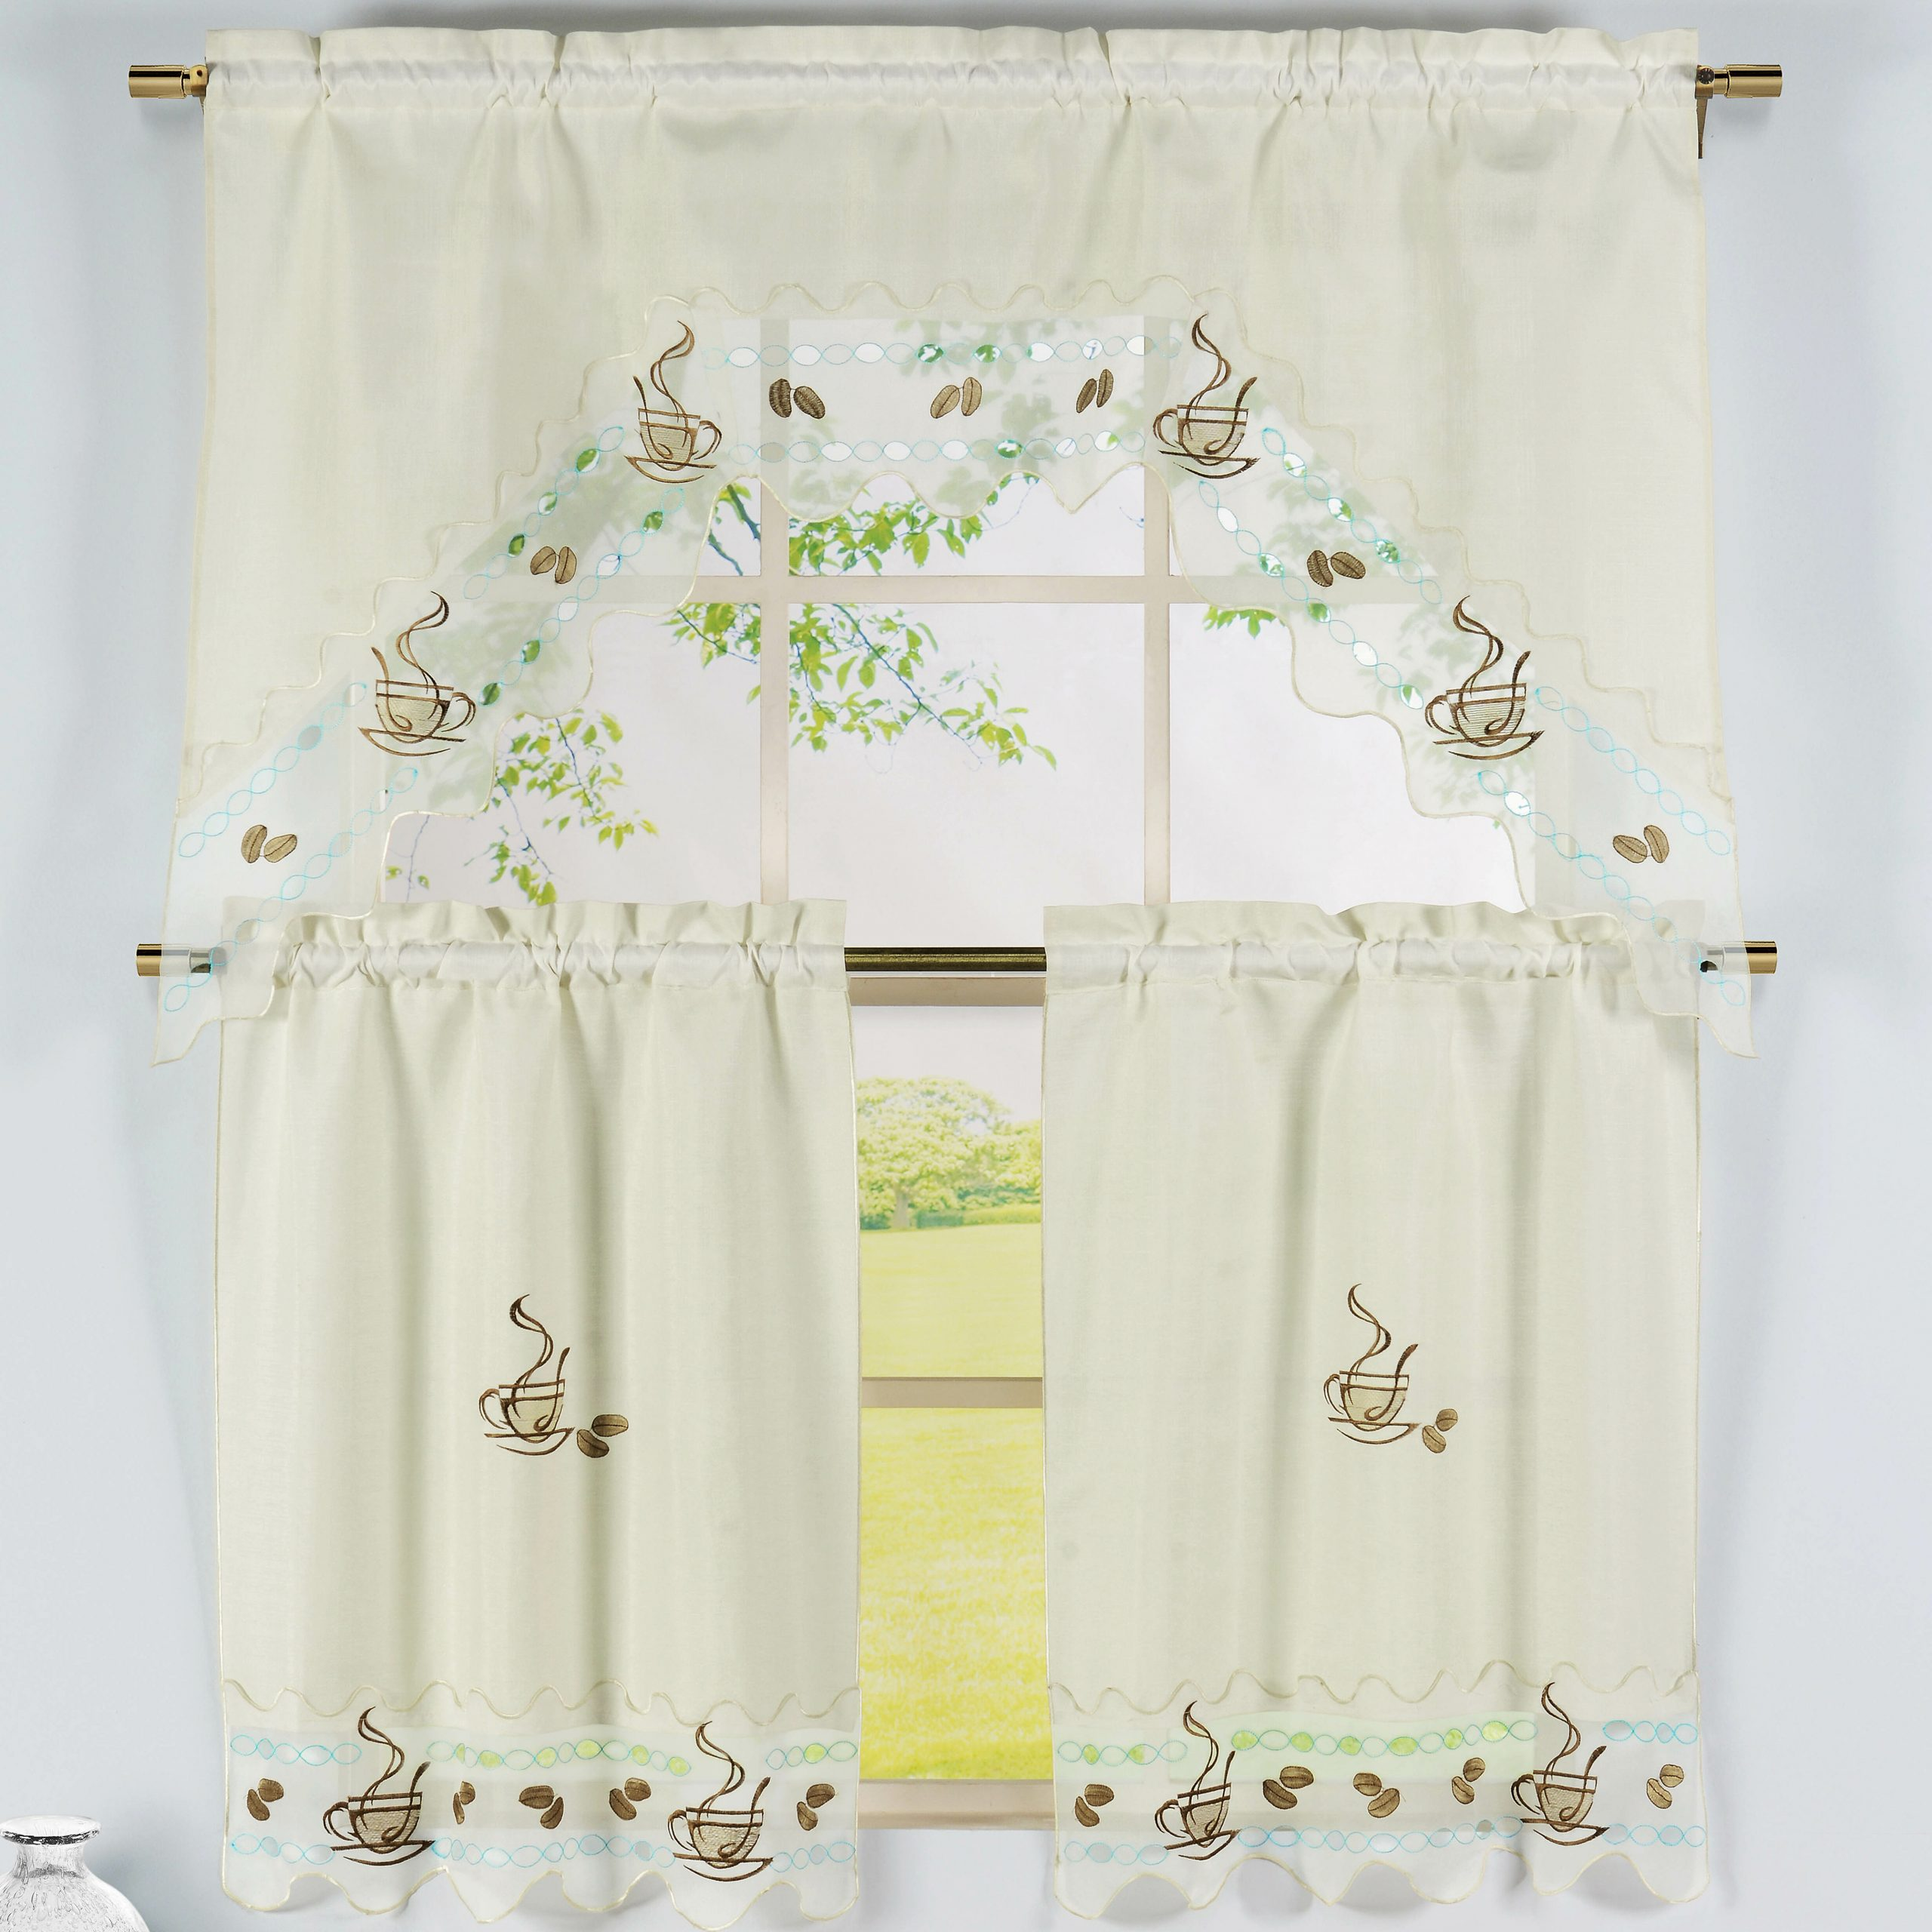 Coffee Talk 3 Piece Embroidered Kitchen Valance And Tier Set In Most Popular Coffee Embroidered Kitchen Curtain Tier Sets (View 7 of 20)